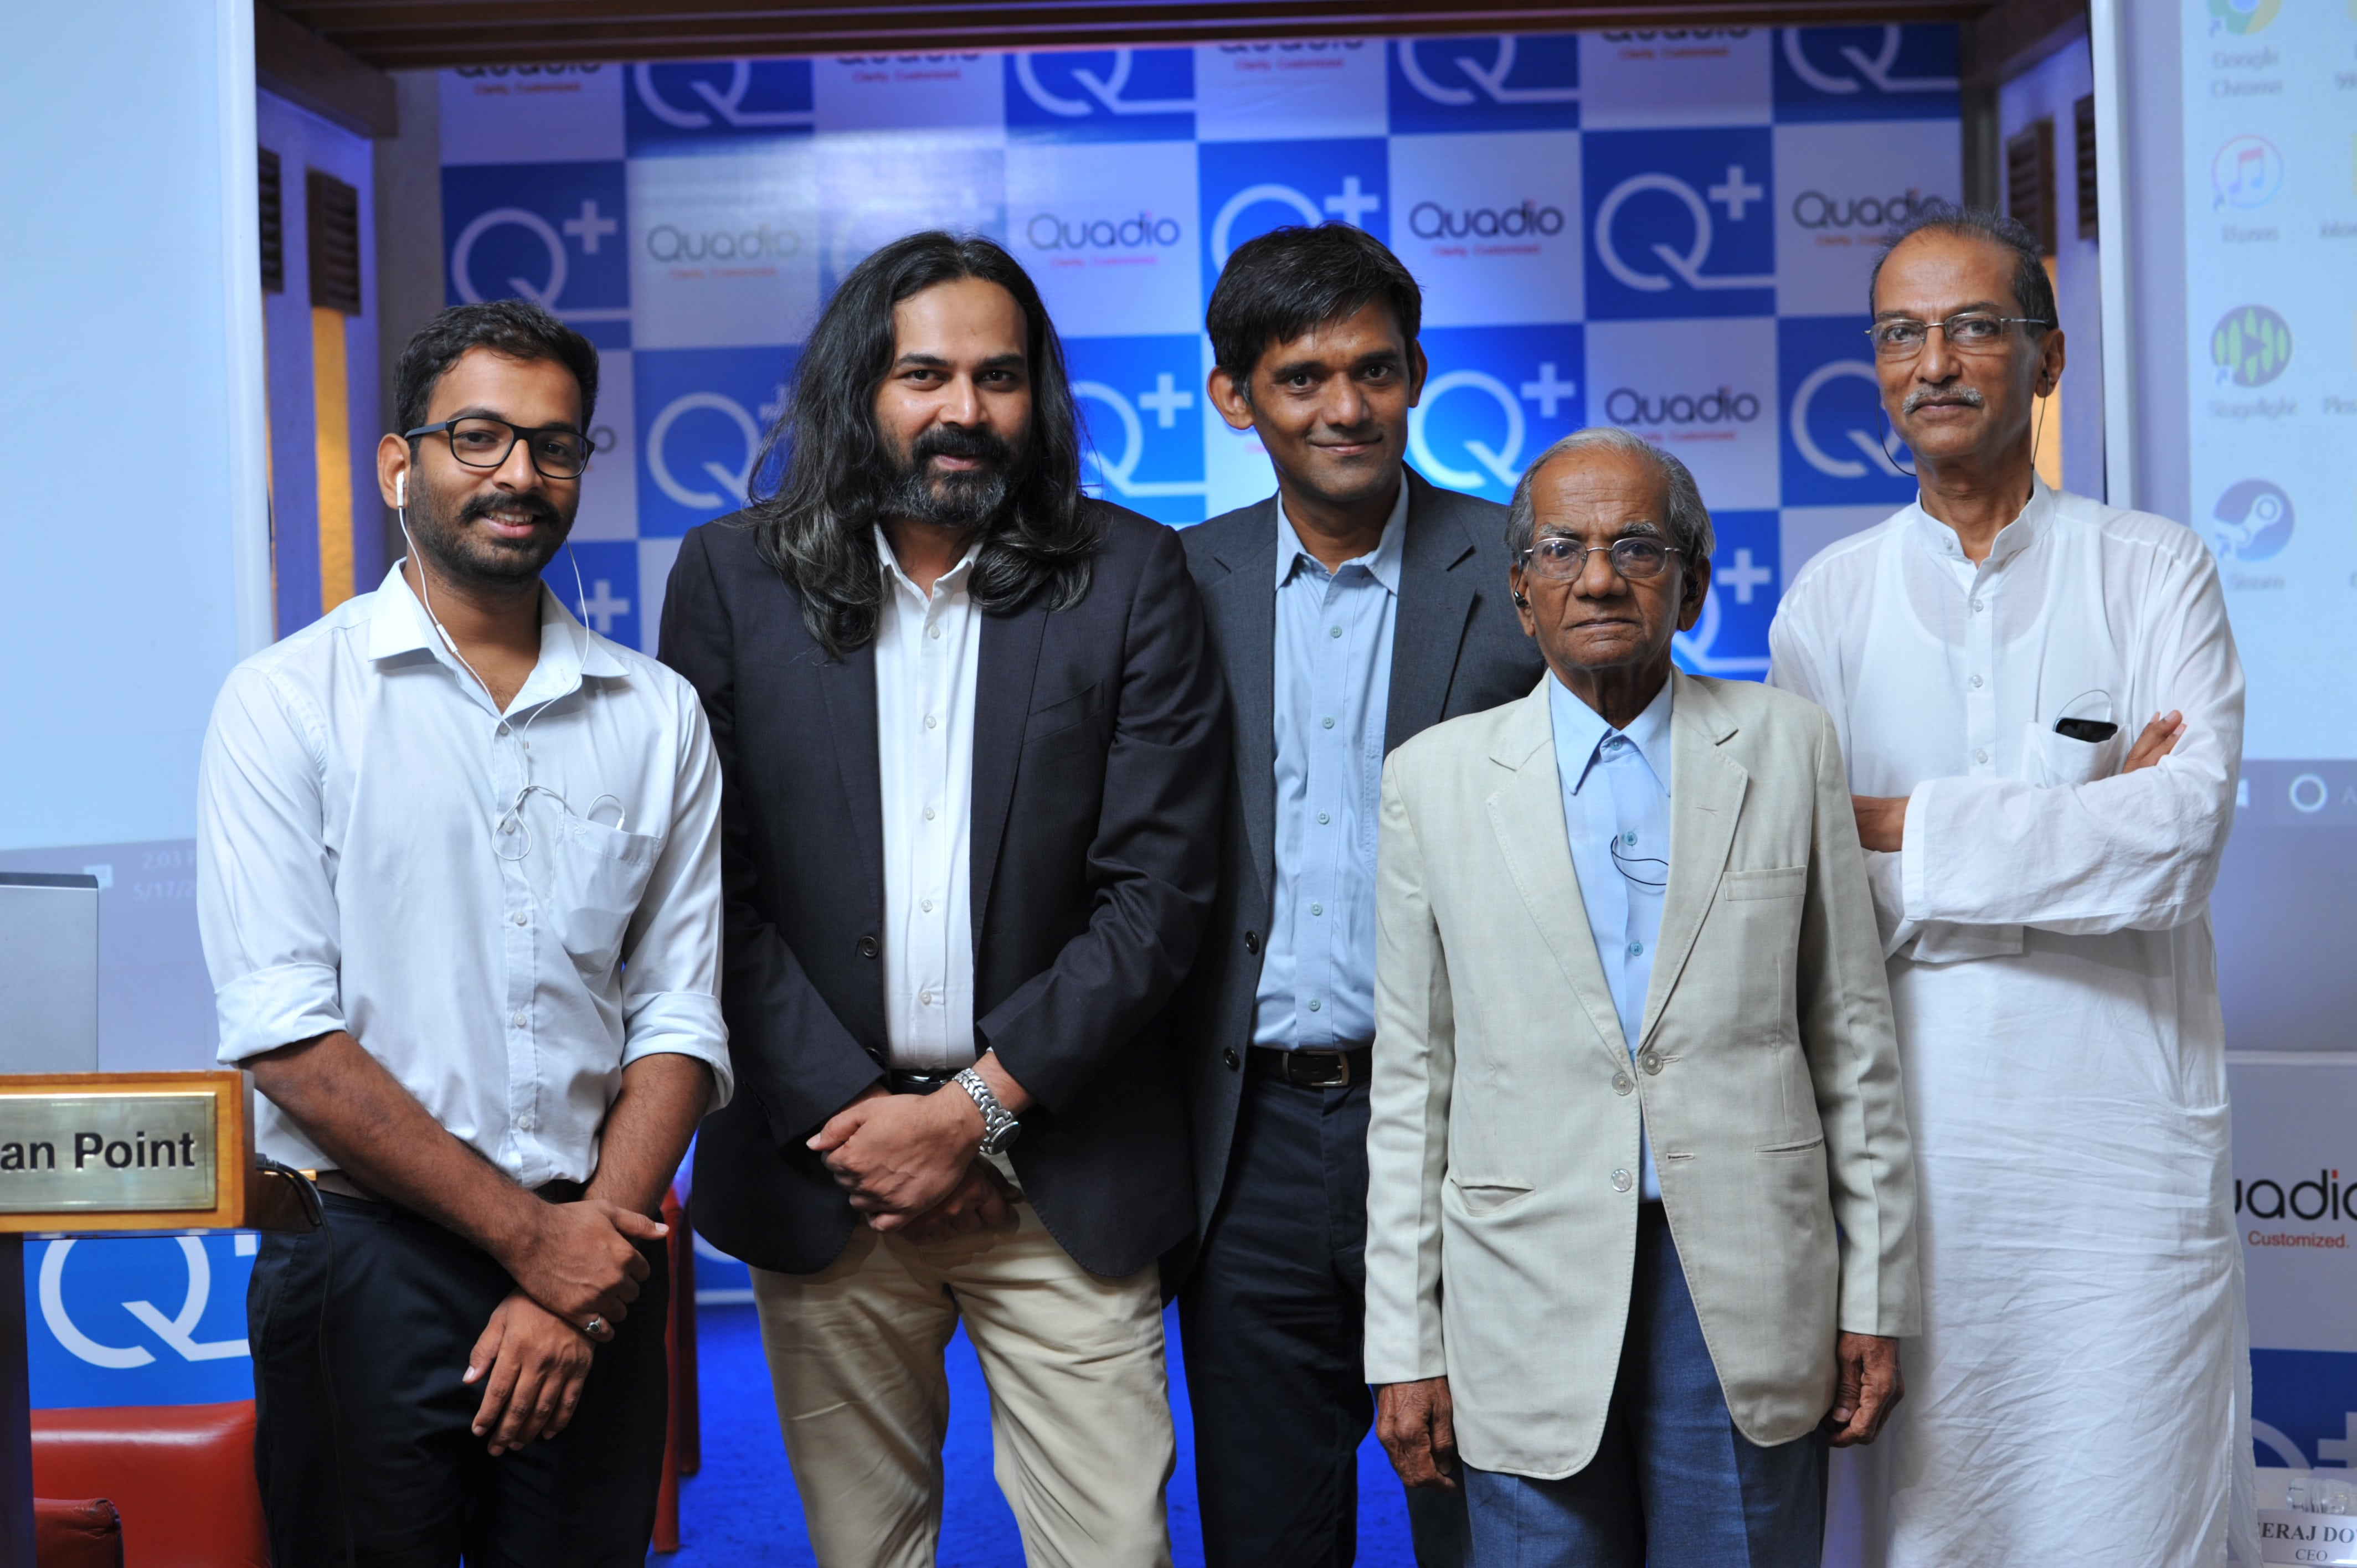 Patients with Neeraj Dotel  CEO_Anurag Sharma  Co-founder & CTO_Paresh Patel  Co-founder of Quadio Devices Pvt Ltd